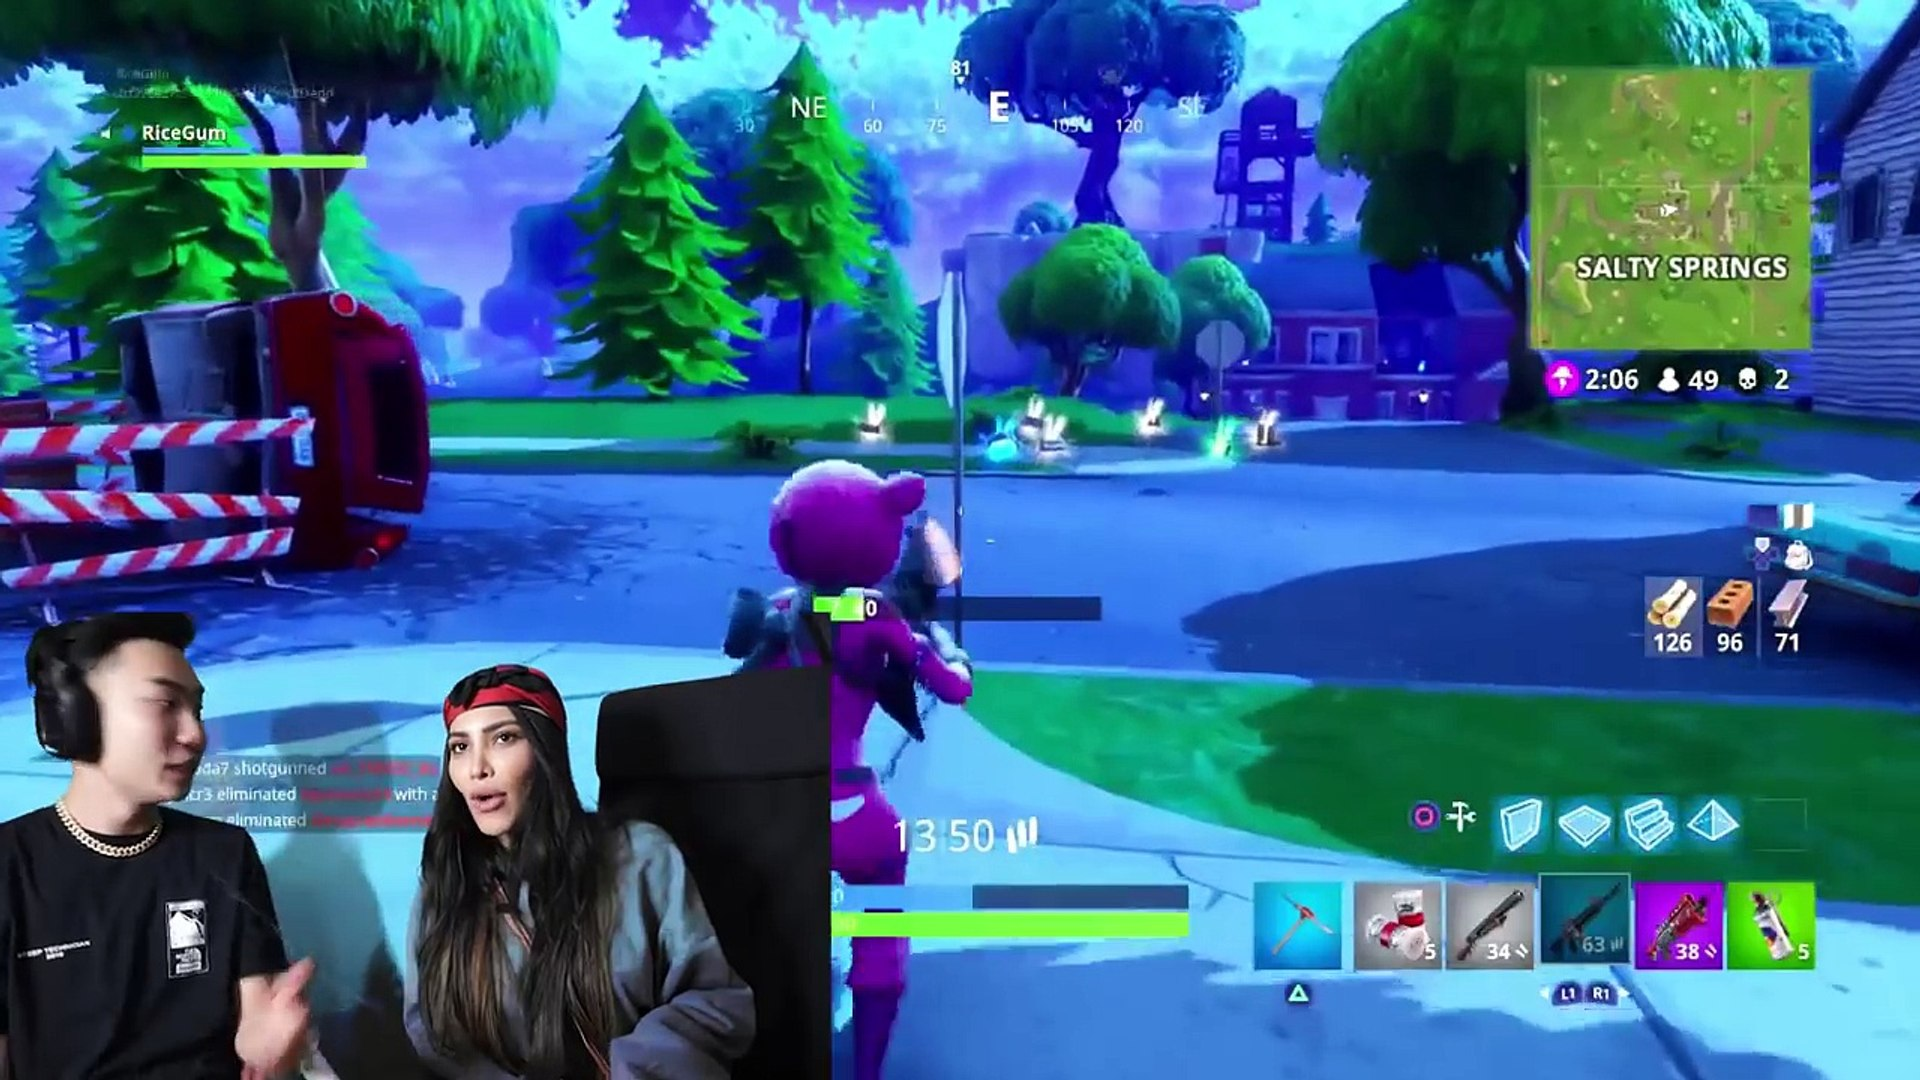 Girls taking their clothes off for every kill in fortnight 1 Kill Remove 1 Clothing Piece Fortnite W Kim Kardashian Insane Ending Dailymotion Video